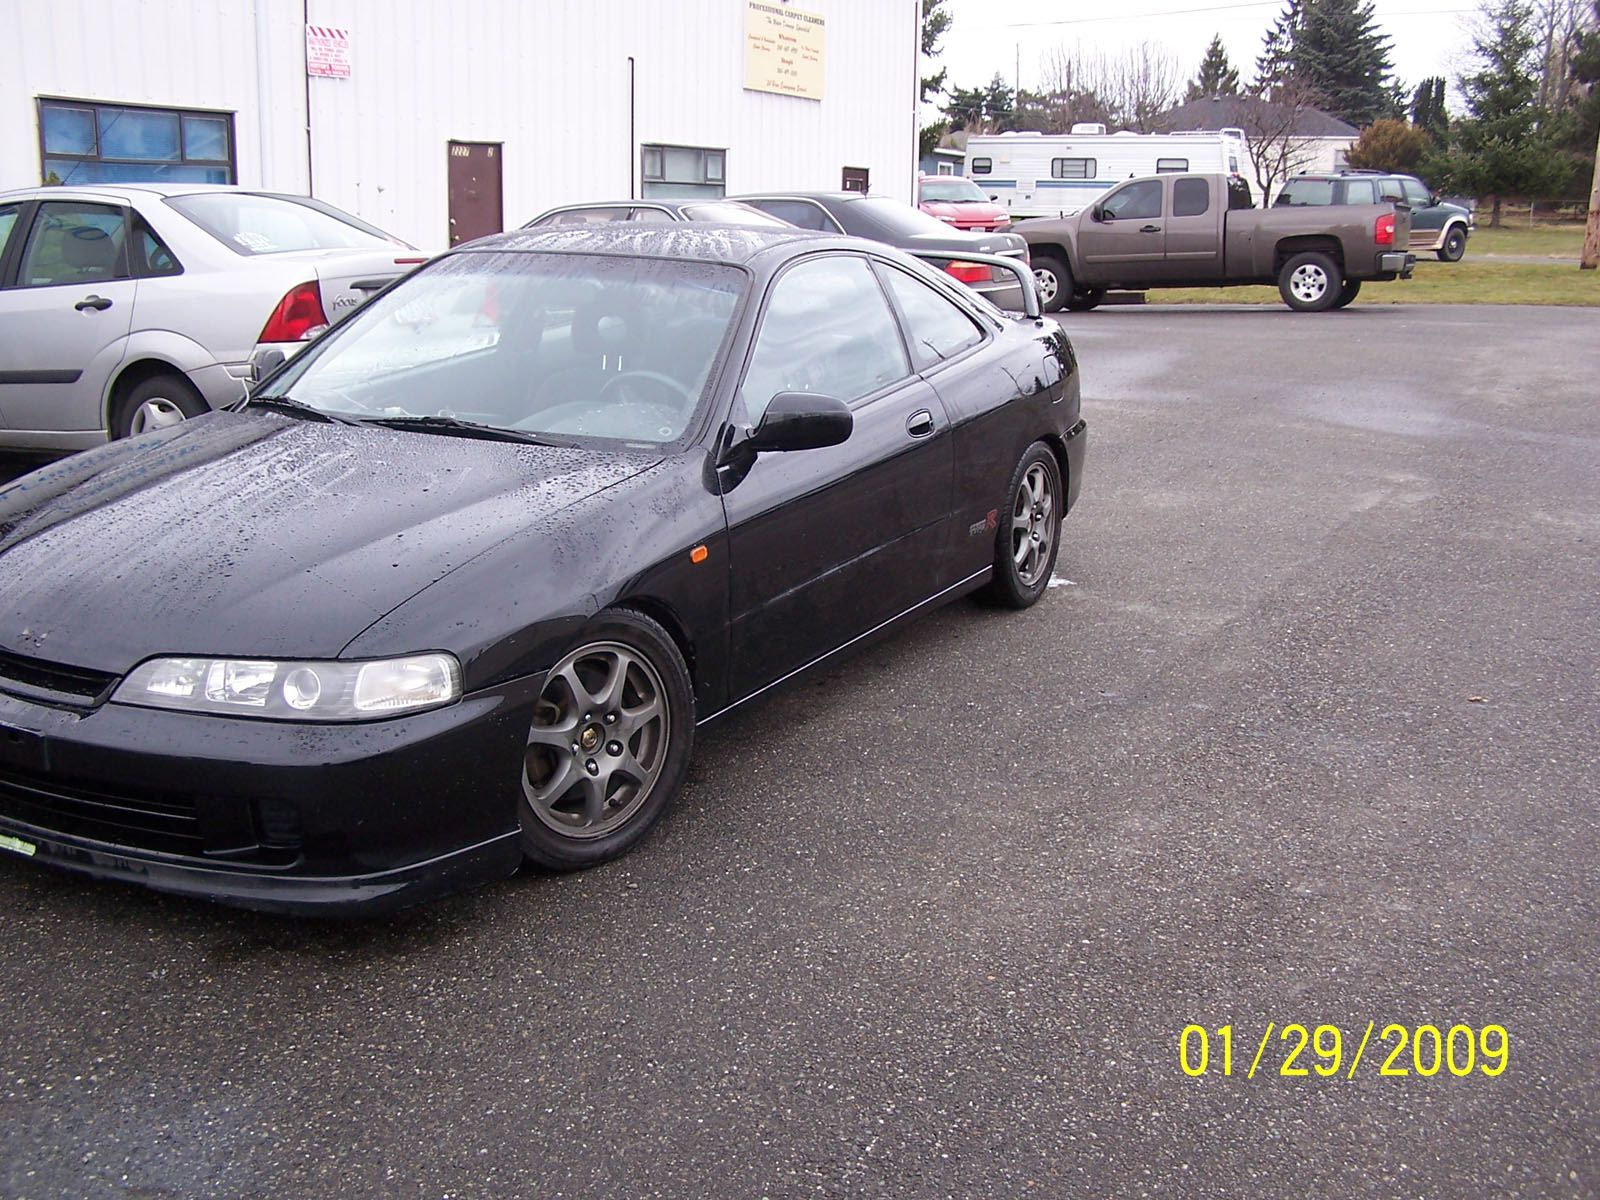 Worksheet. 2001 Acura Integra Type R  Information and photos  SCIposts